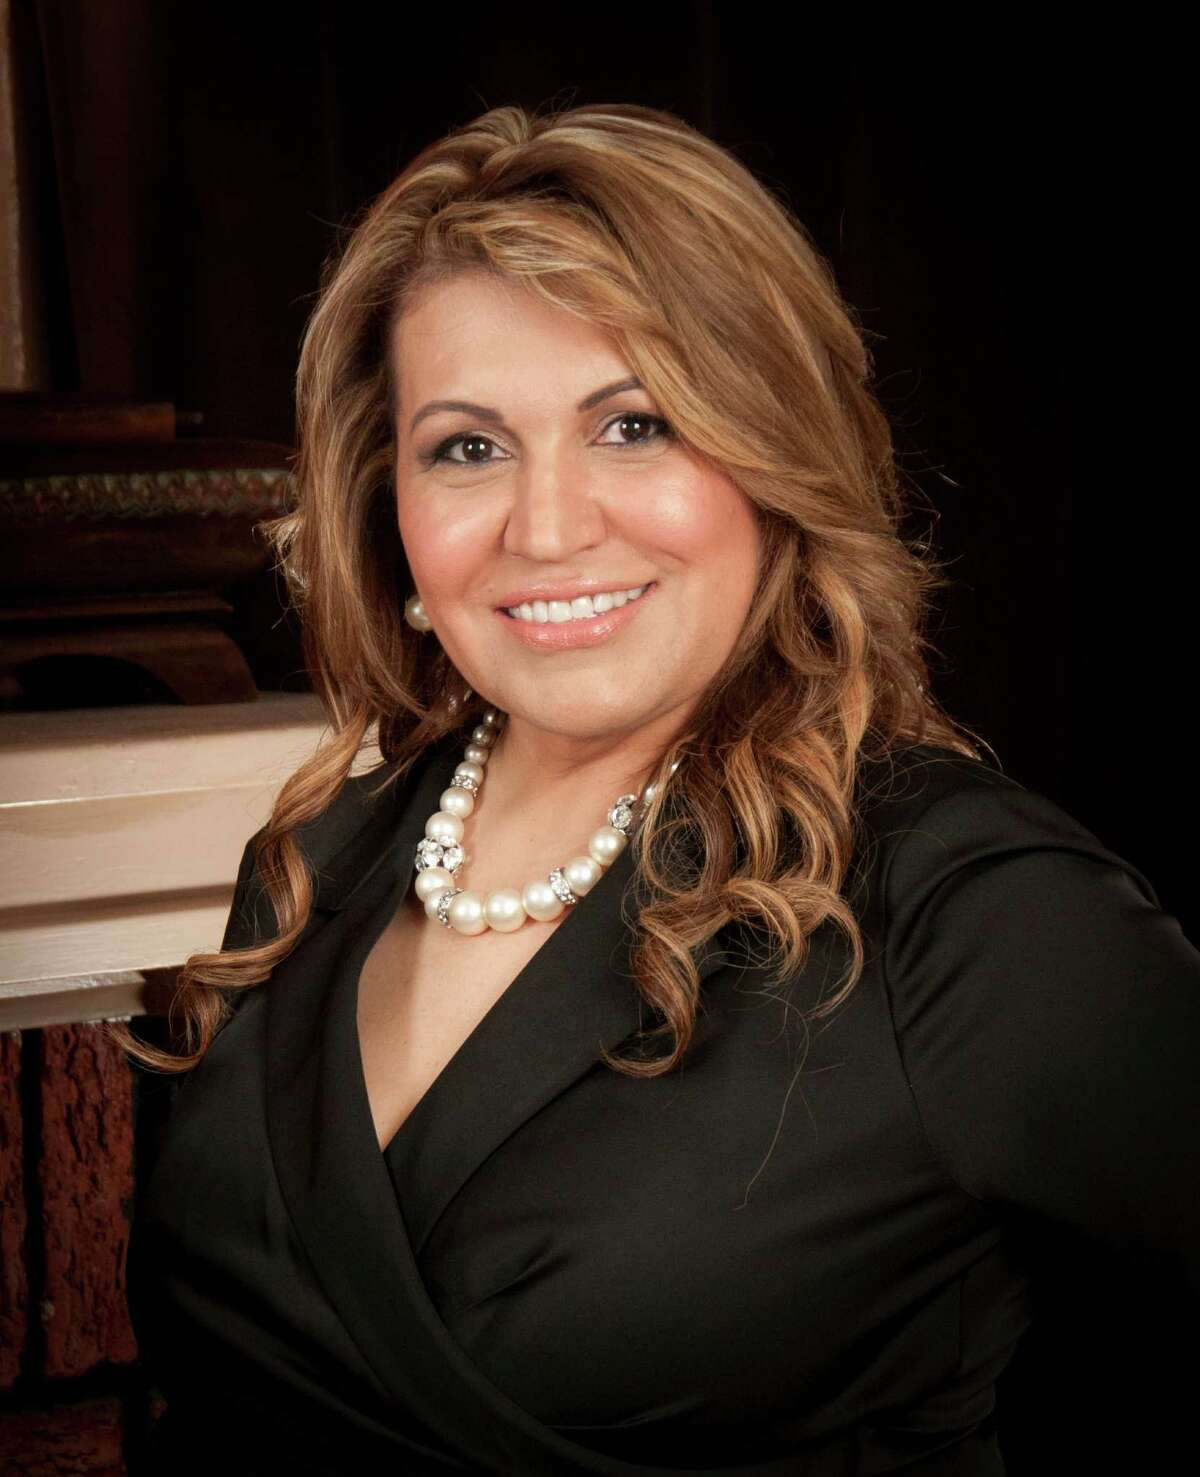 Maria Rios President and CEO of Nation Waste Maria serves on Houston Minority Supplier Development Council, is Executive Board member of the Houston Hispanic Chamber of Commerce, and is a member of the City of Houston Mayor's Small Business Opportunity Advisory Board.